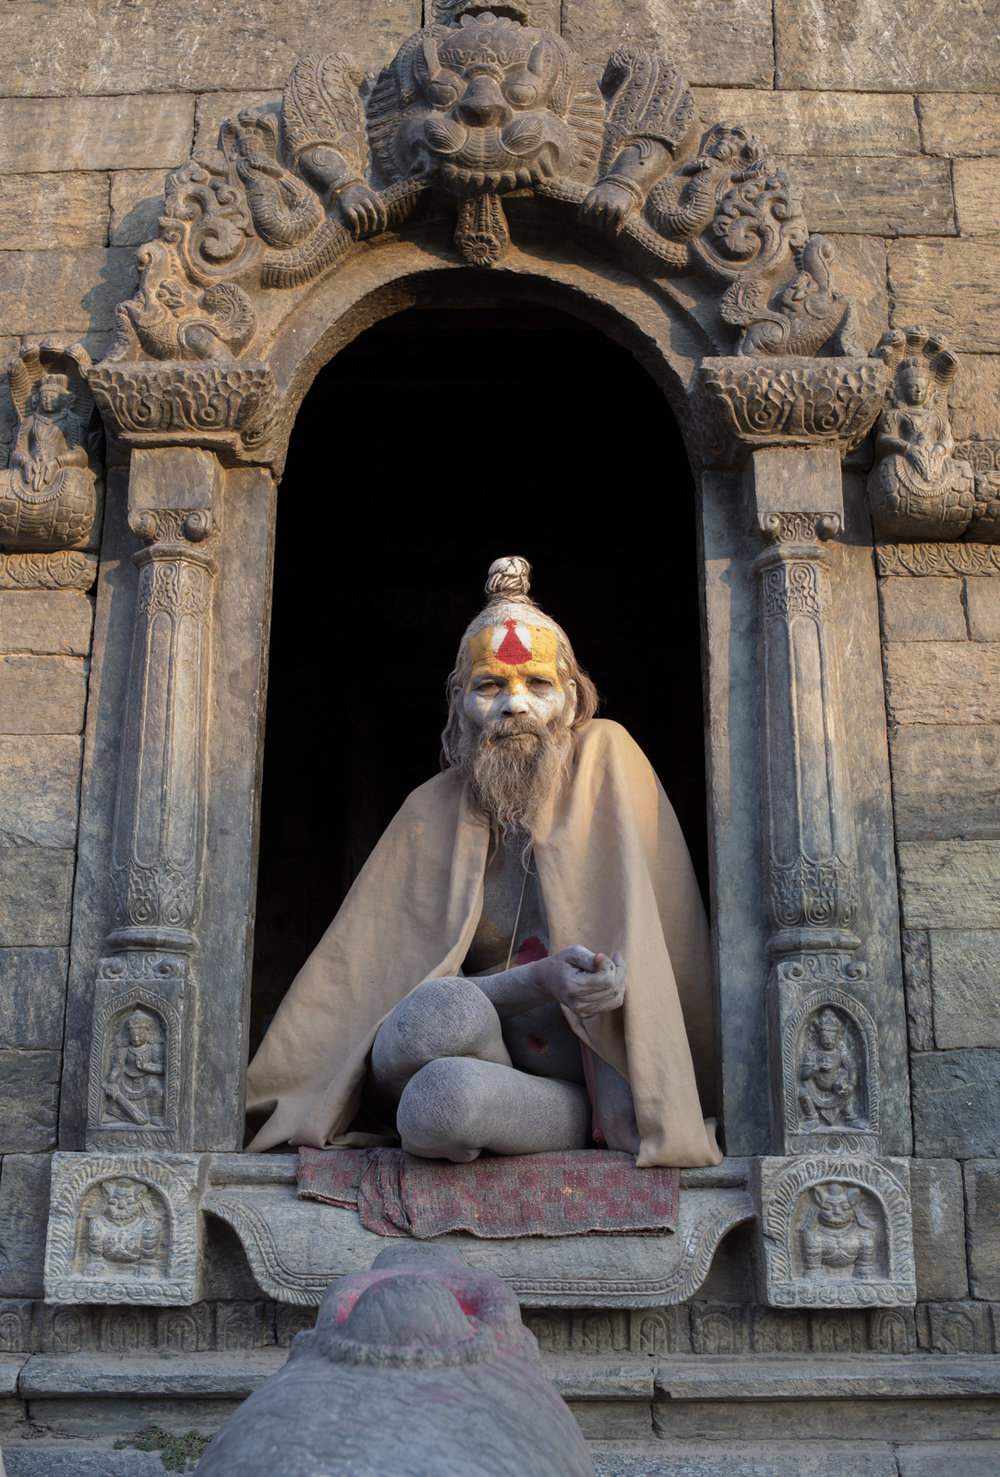 A portrait of a Sadhu holy man.